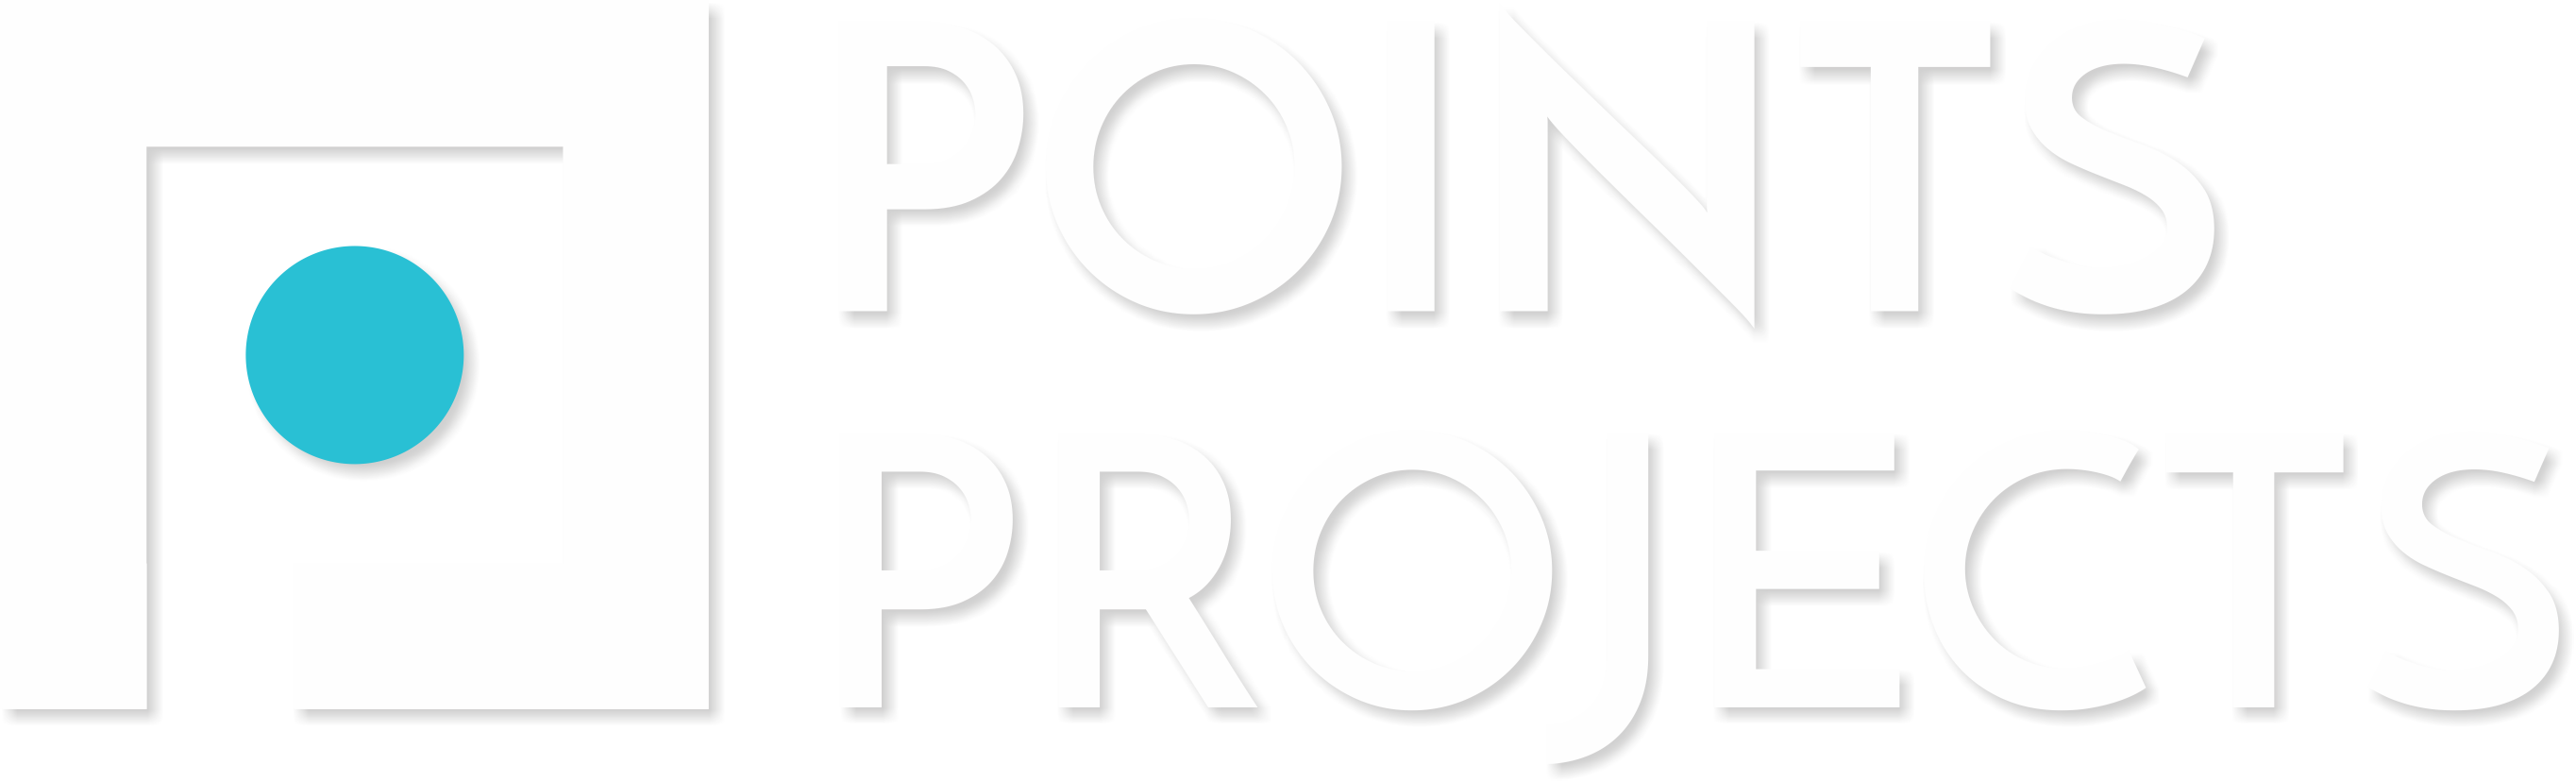 Points-logo-2-1-2